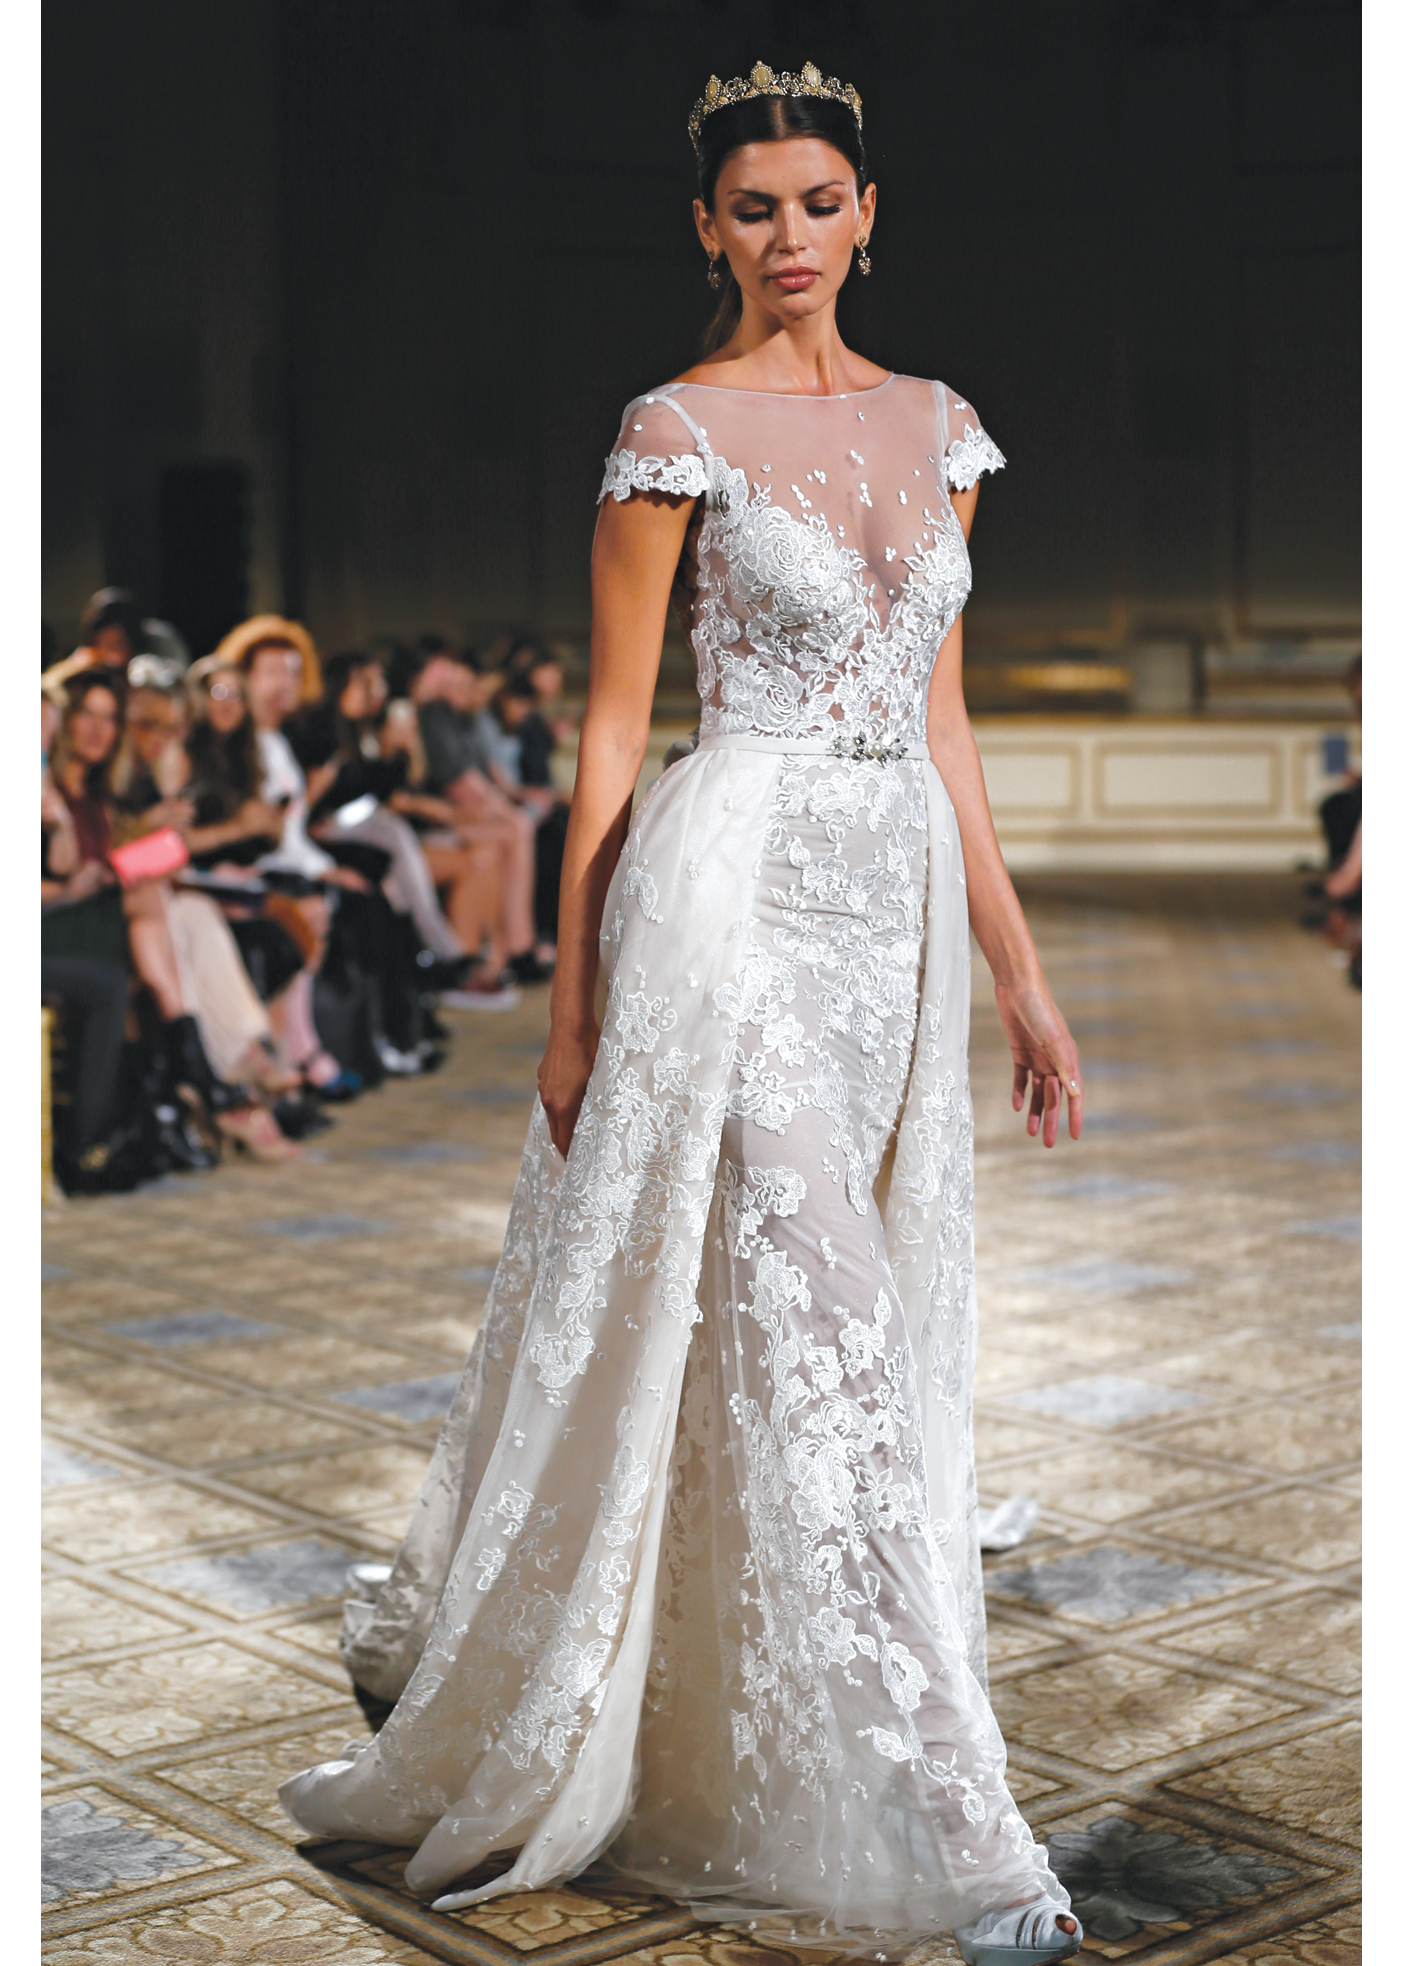 Berta Bridal Wedding Gowns in NY, NJ, CT, and PA